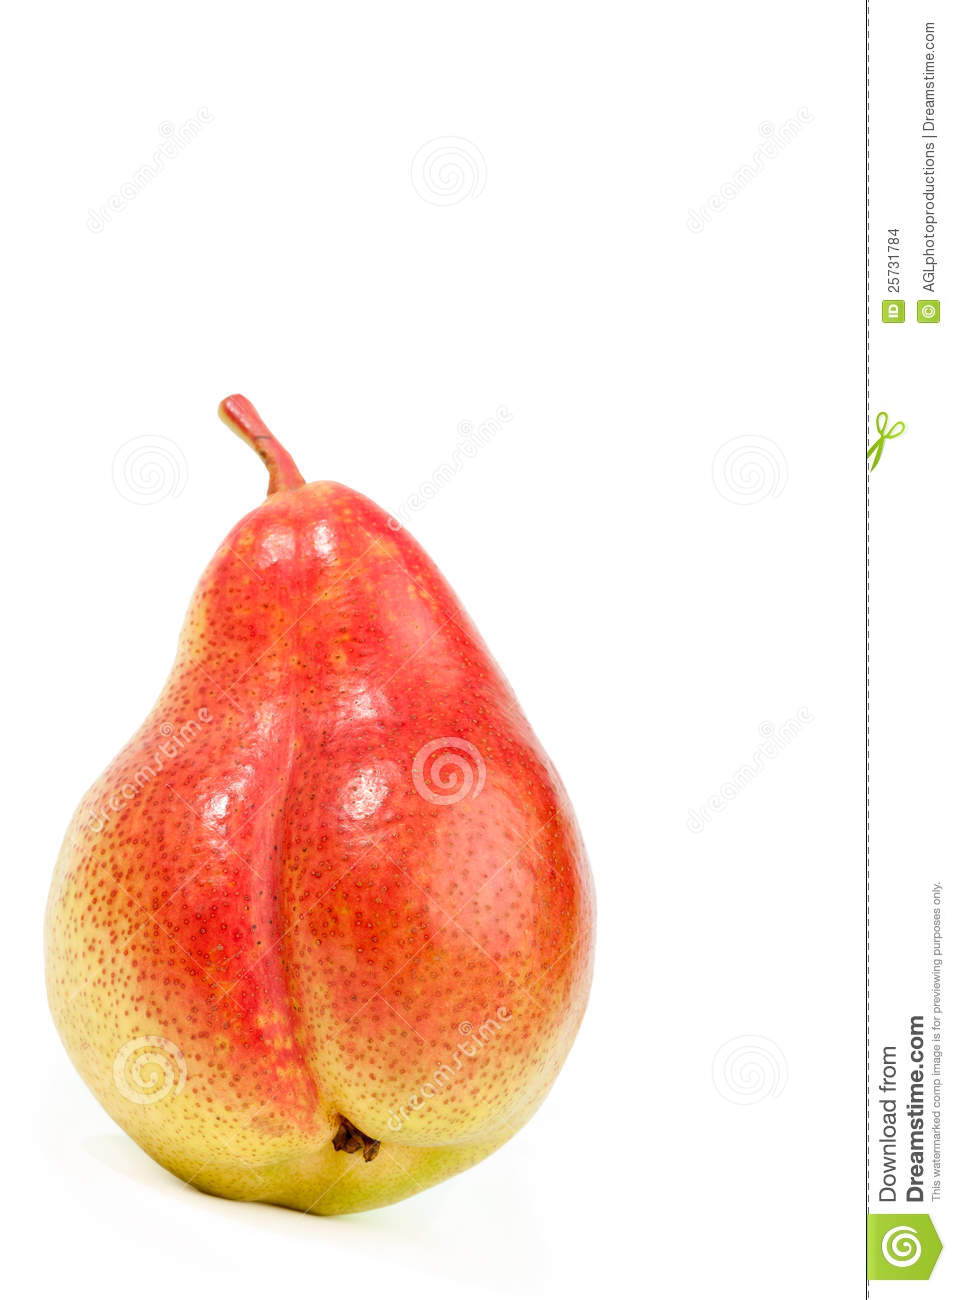 Fresh ripe pear on white